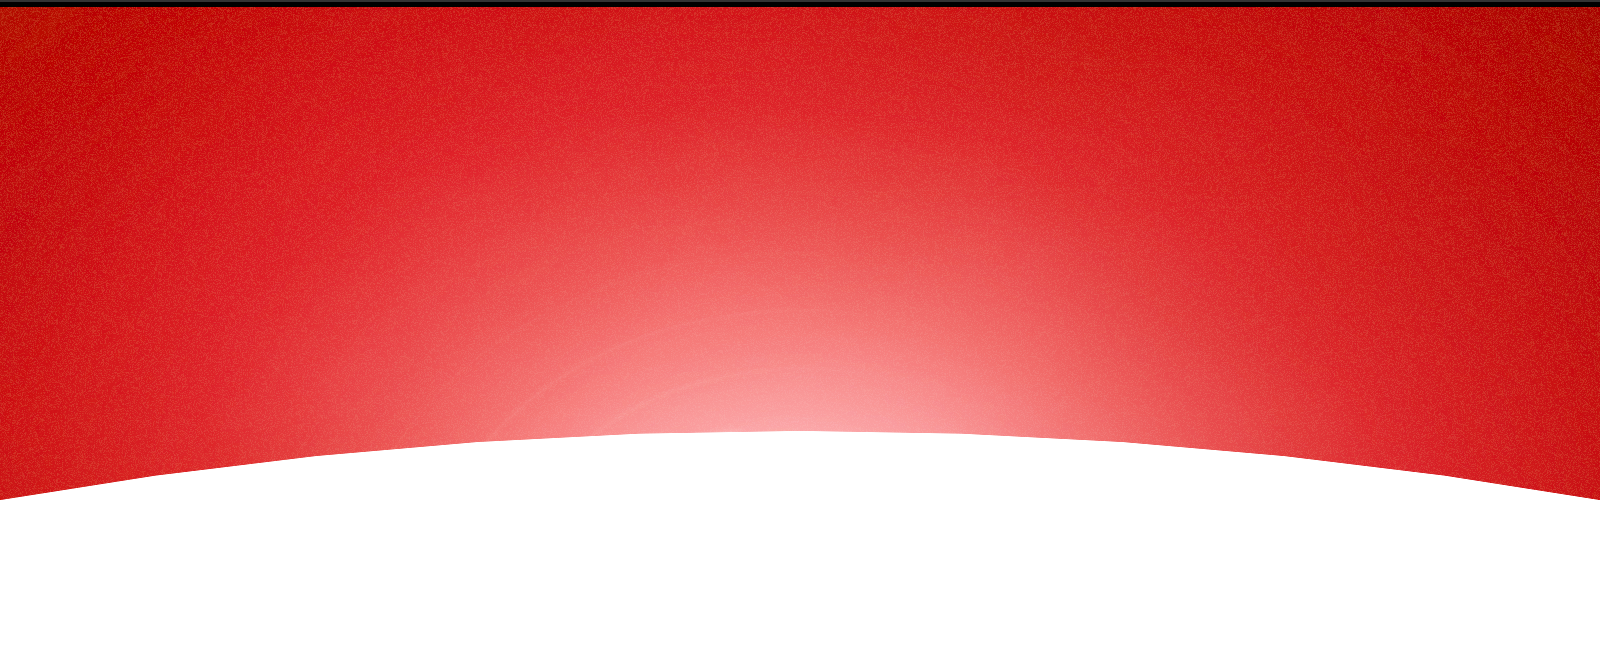 Red png. Image mart